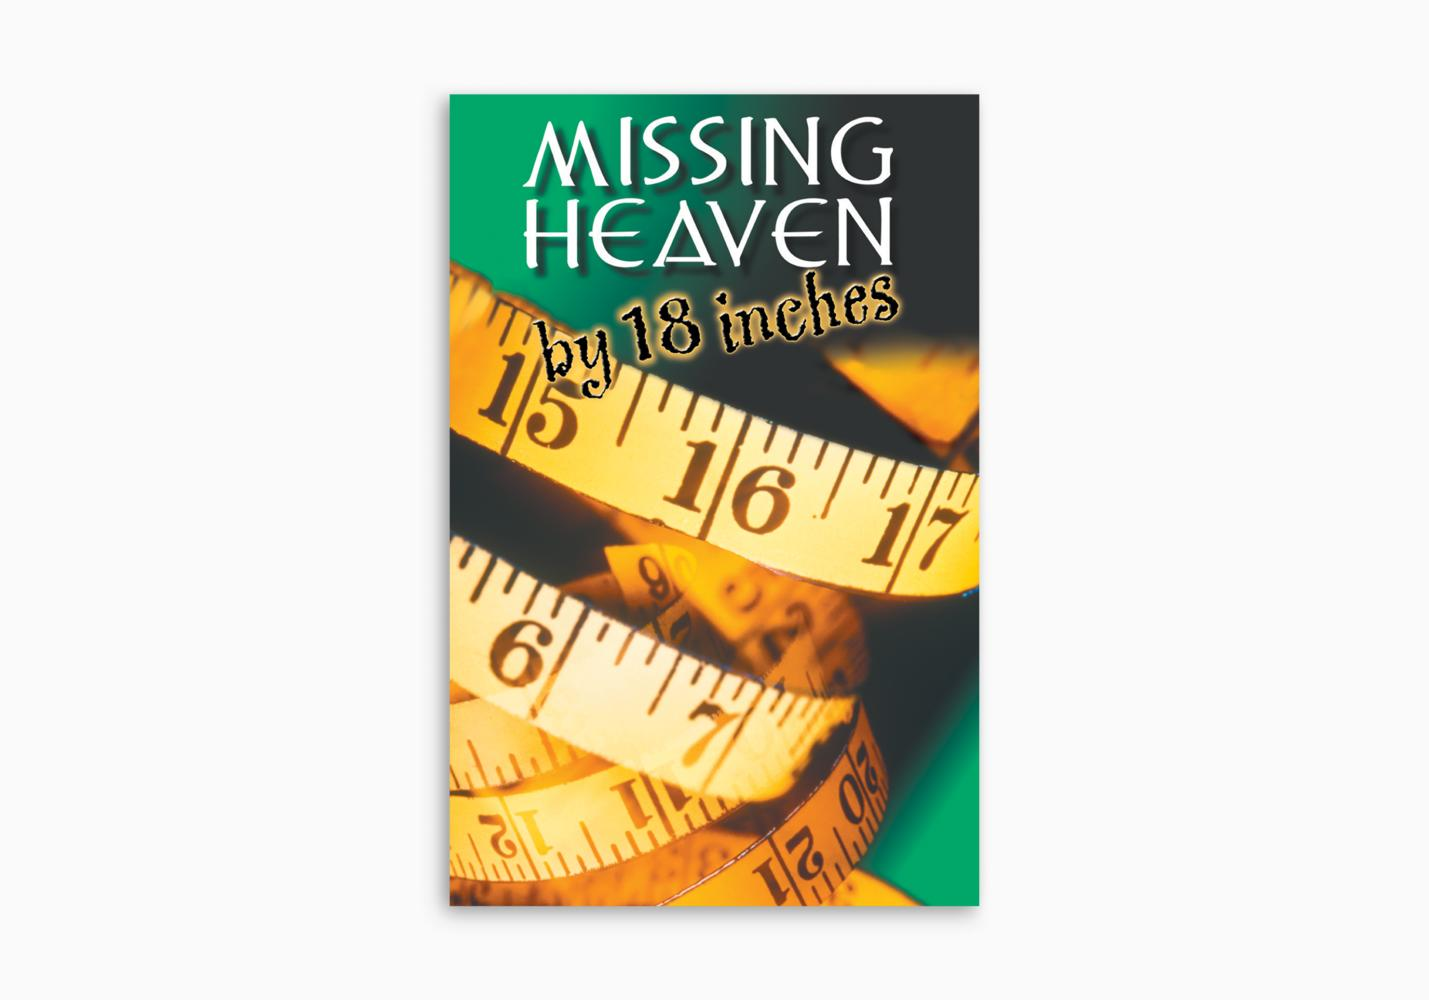 Missing Heaven by 18 Inches (ATS)